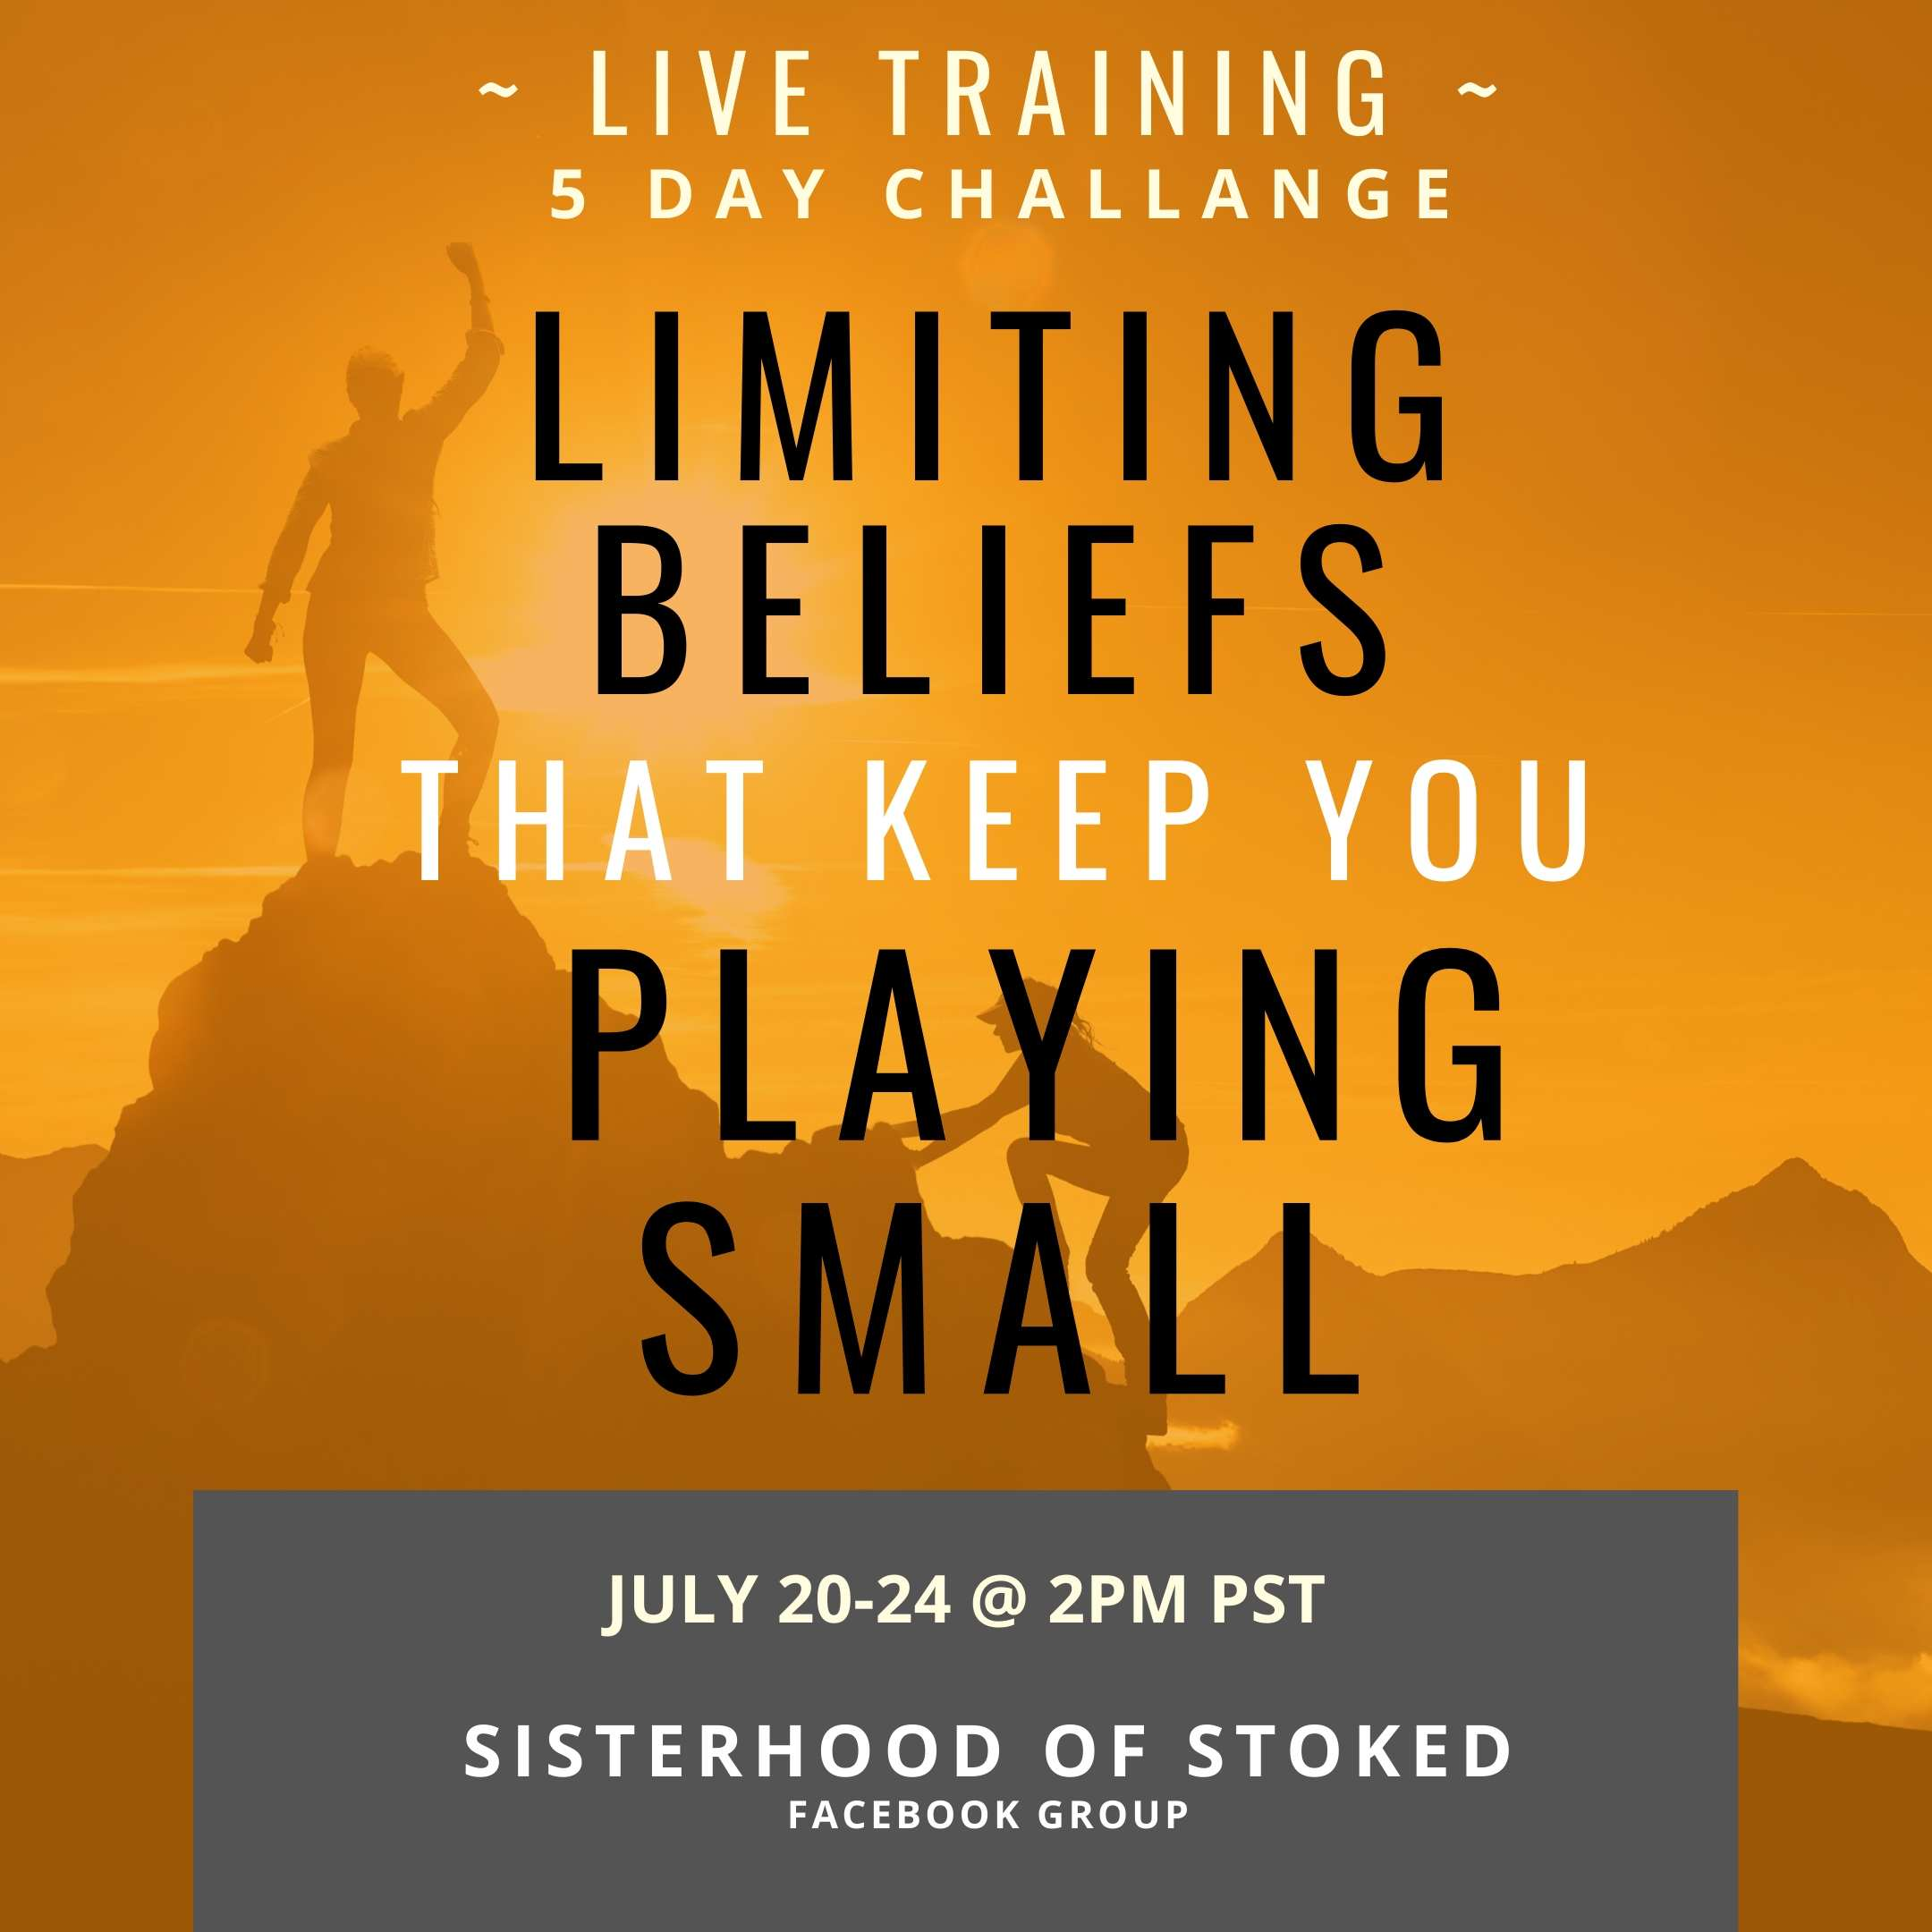 5 Day Challenge: Limited Beliefs That Keep You playing Small